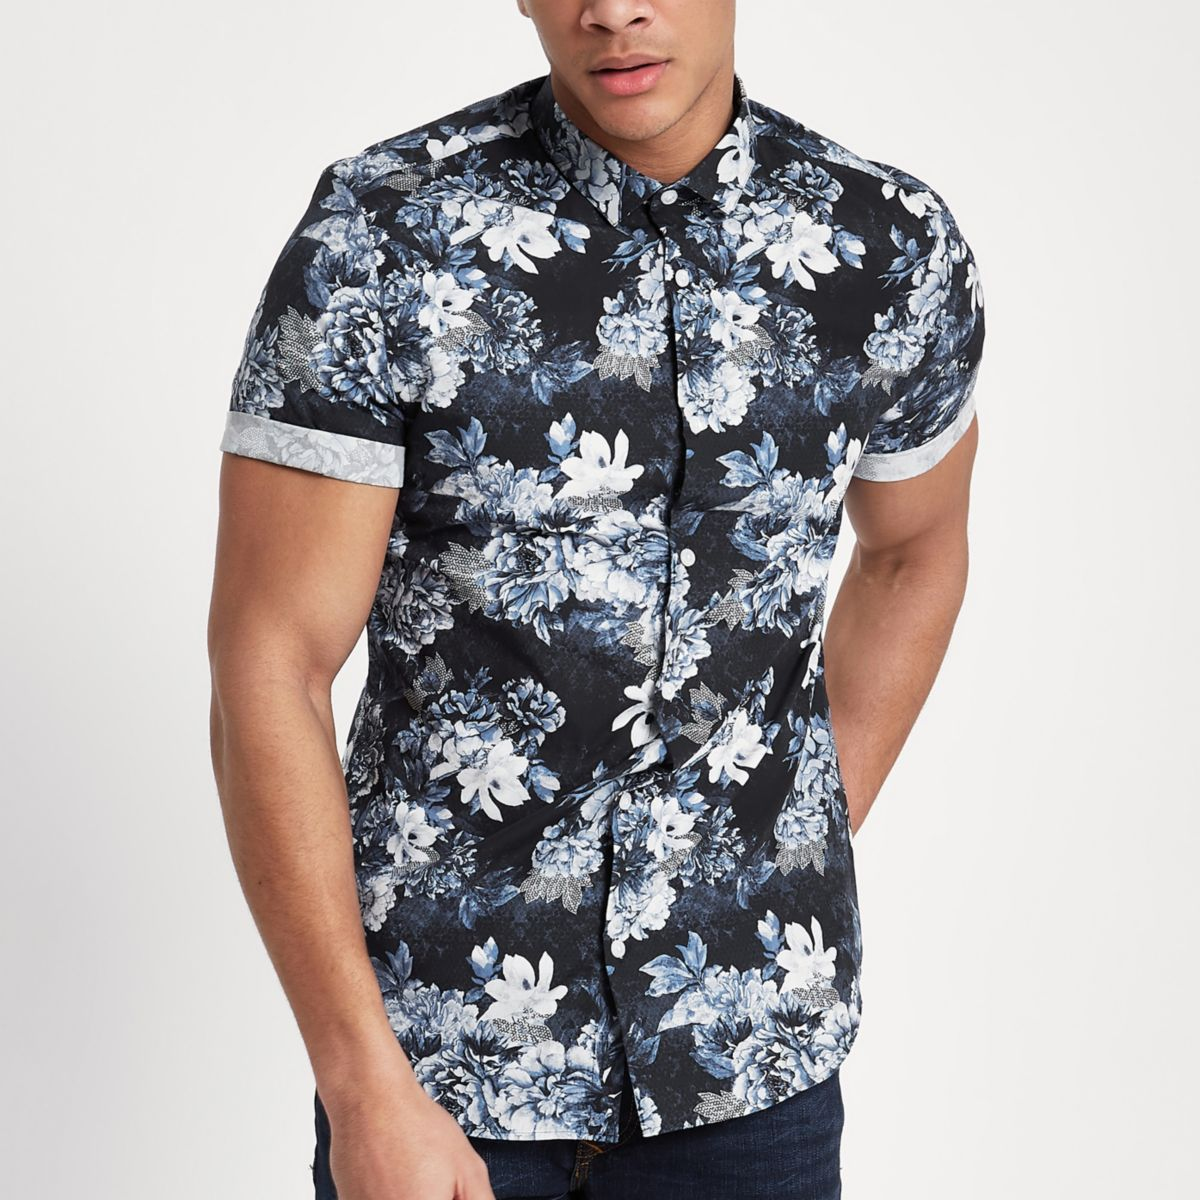 Navy floral slim fit short sleeve shirt shirts sale men for Short sleeved shirts for men